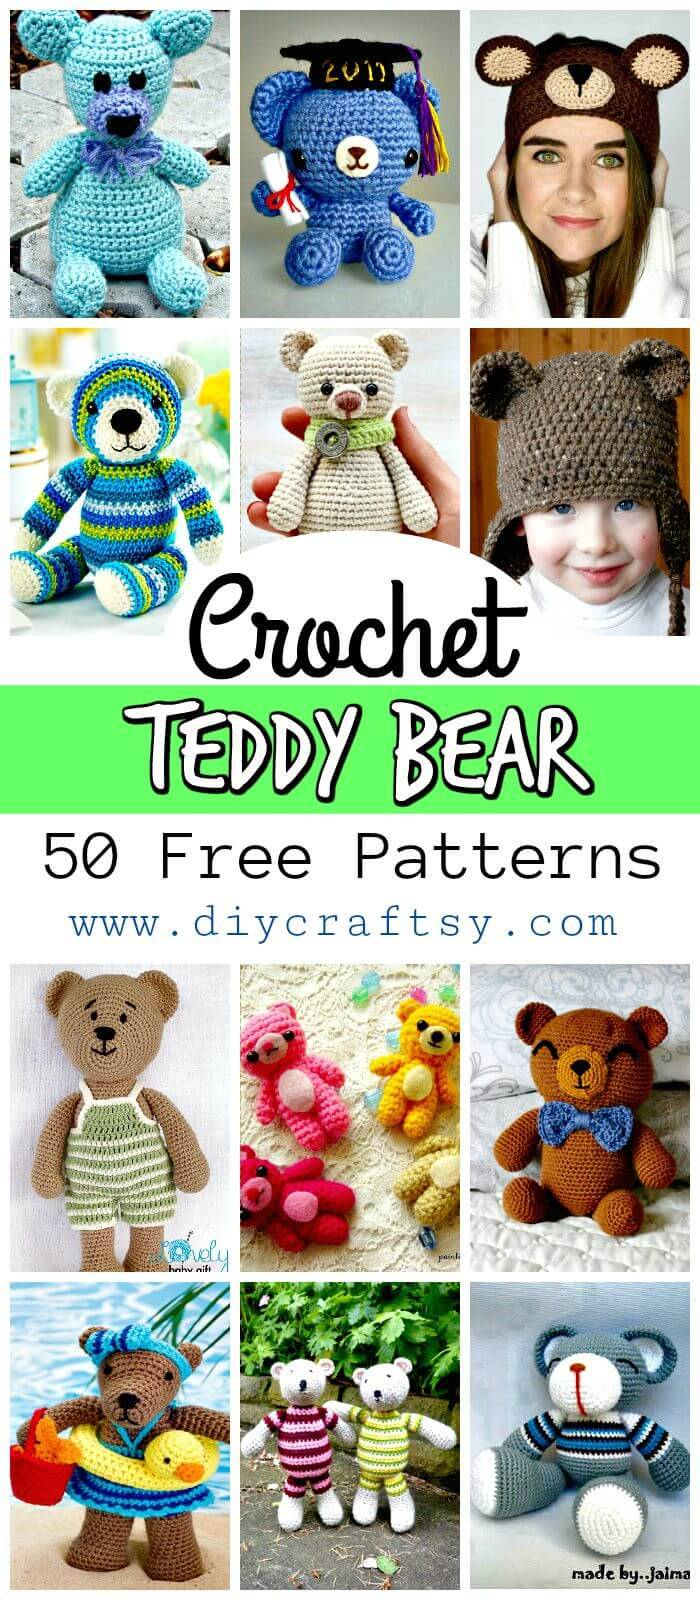 50 Free Crochet Teddy Bear Patterns